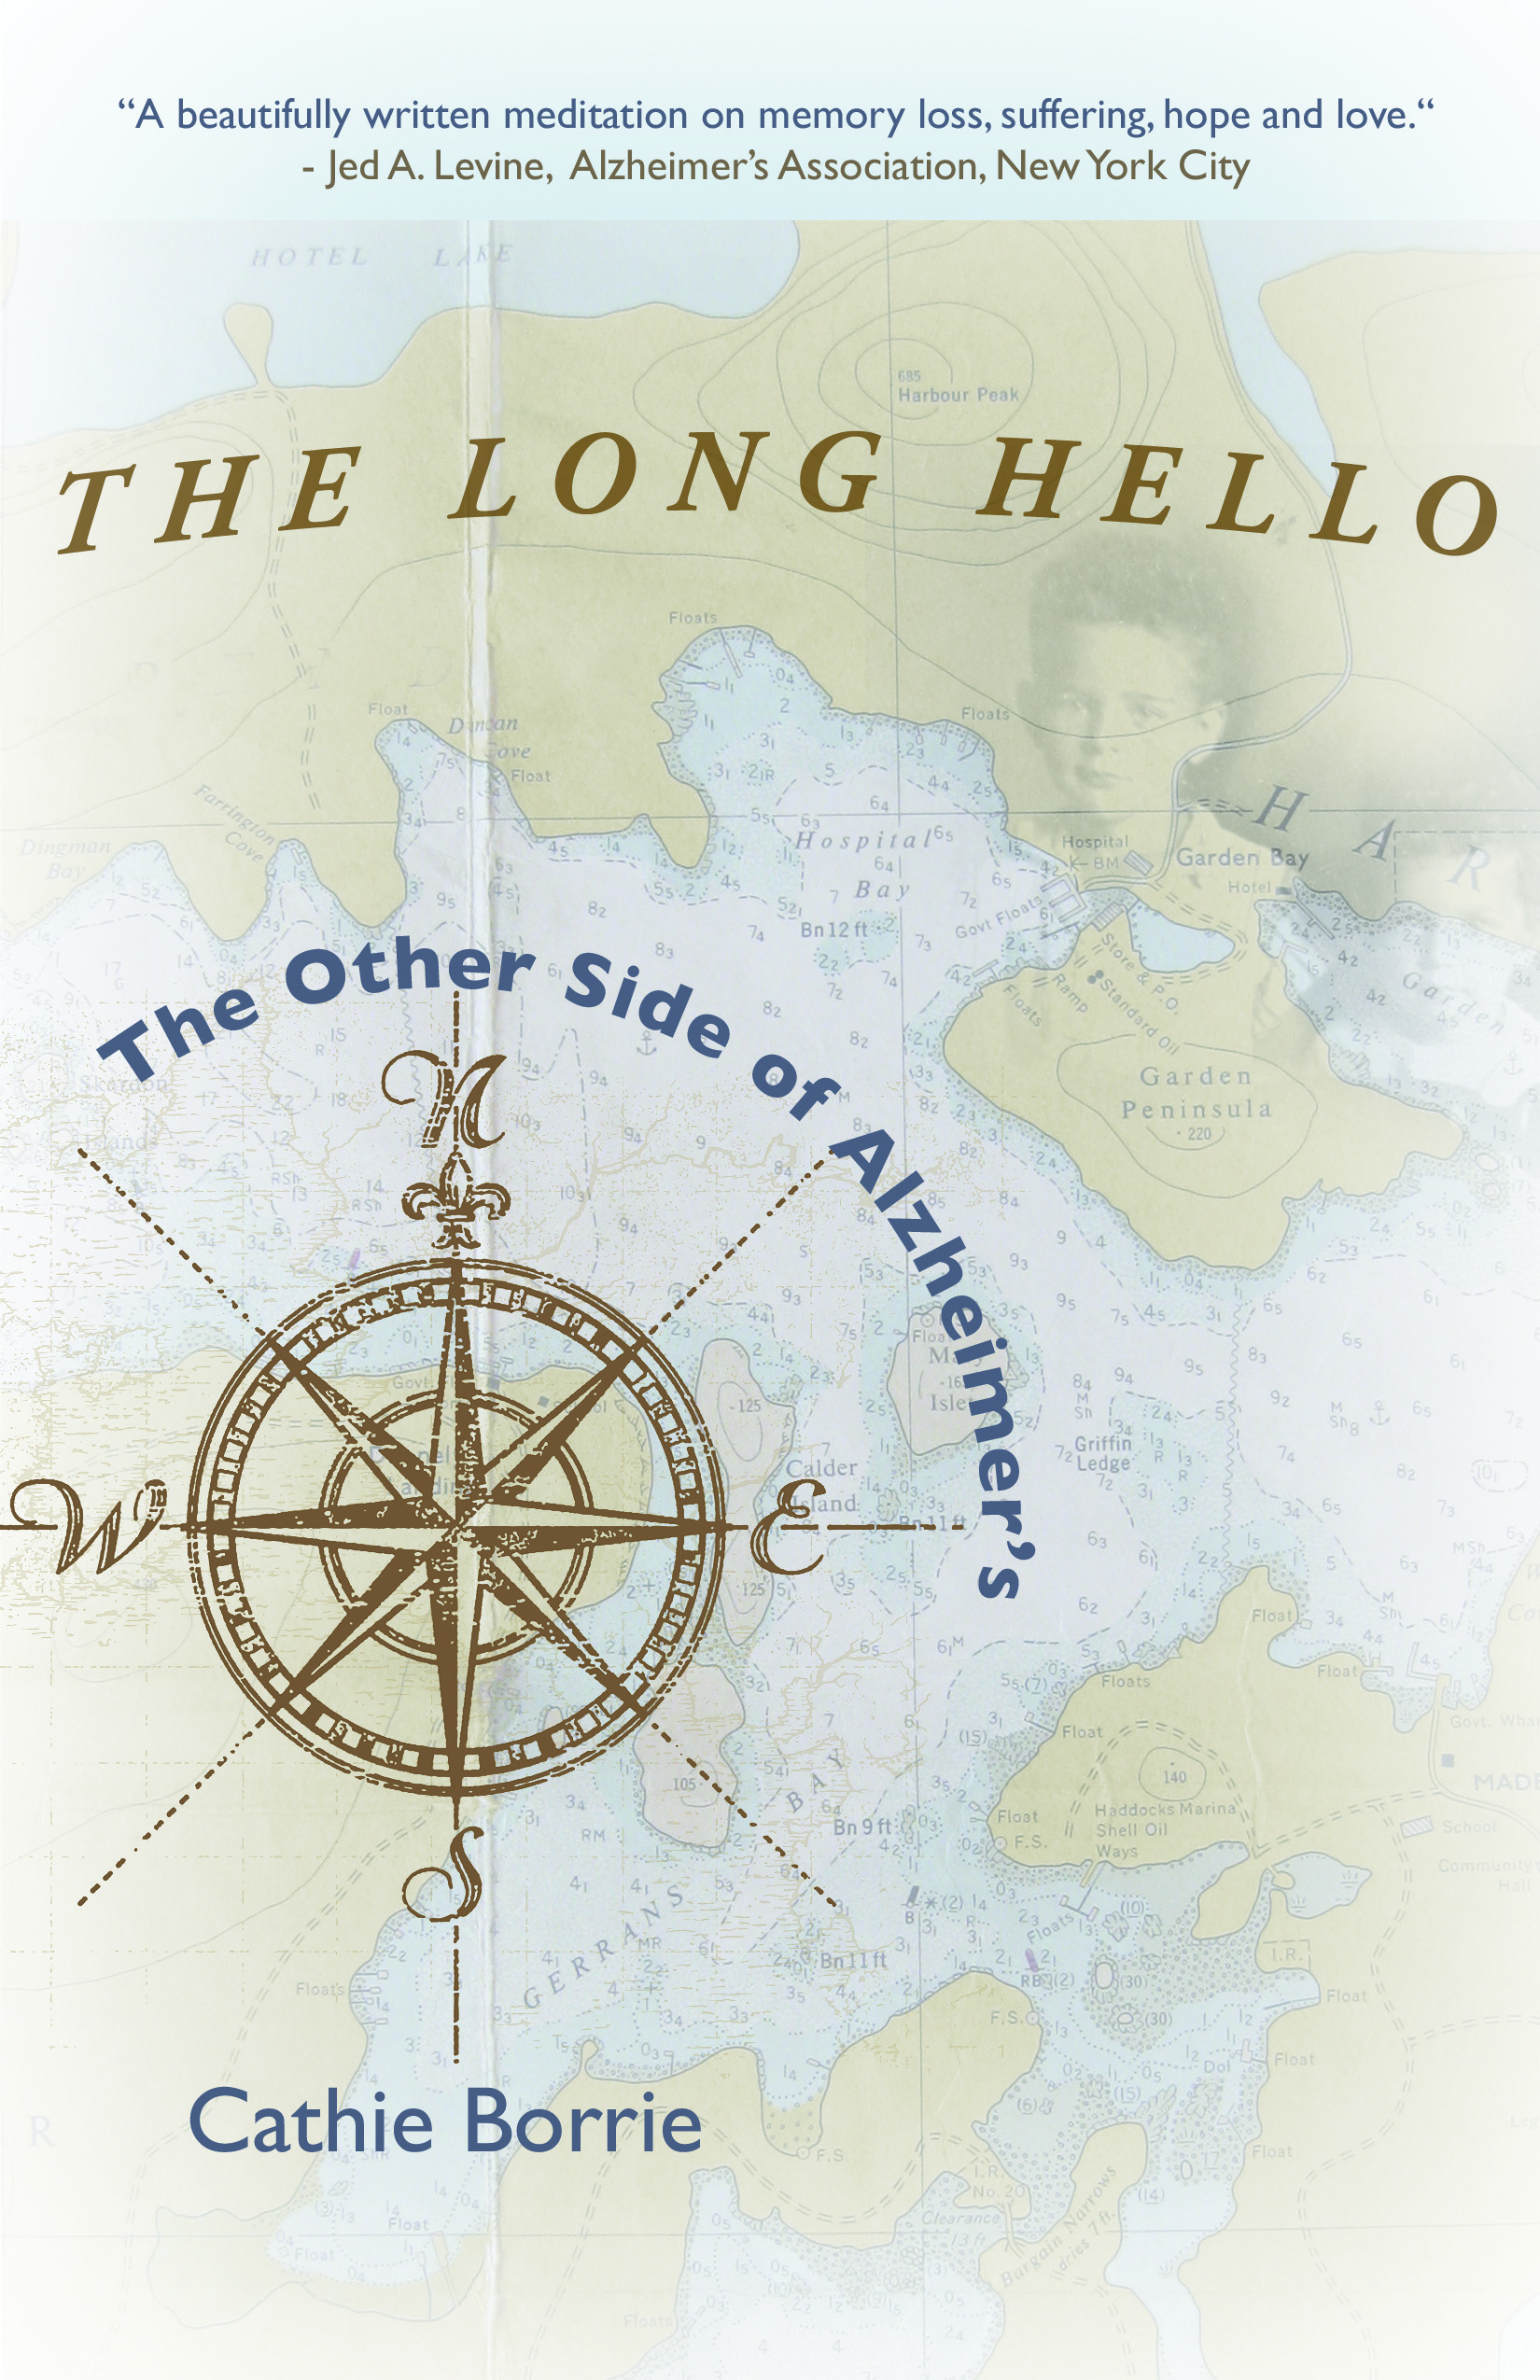 The Long Hello~The Other Side of Alzheimer's